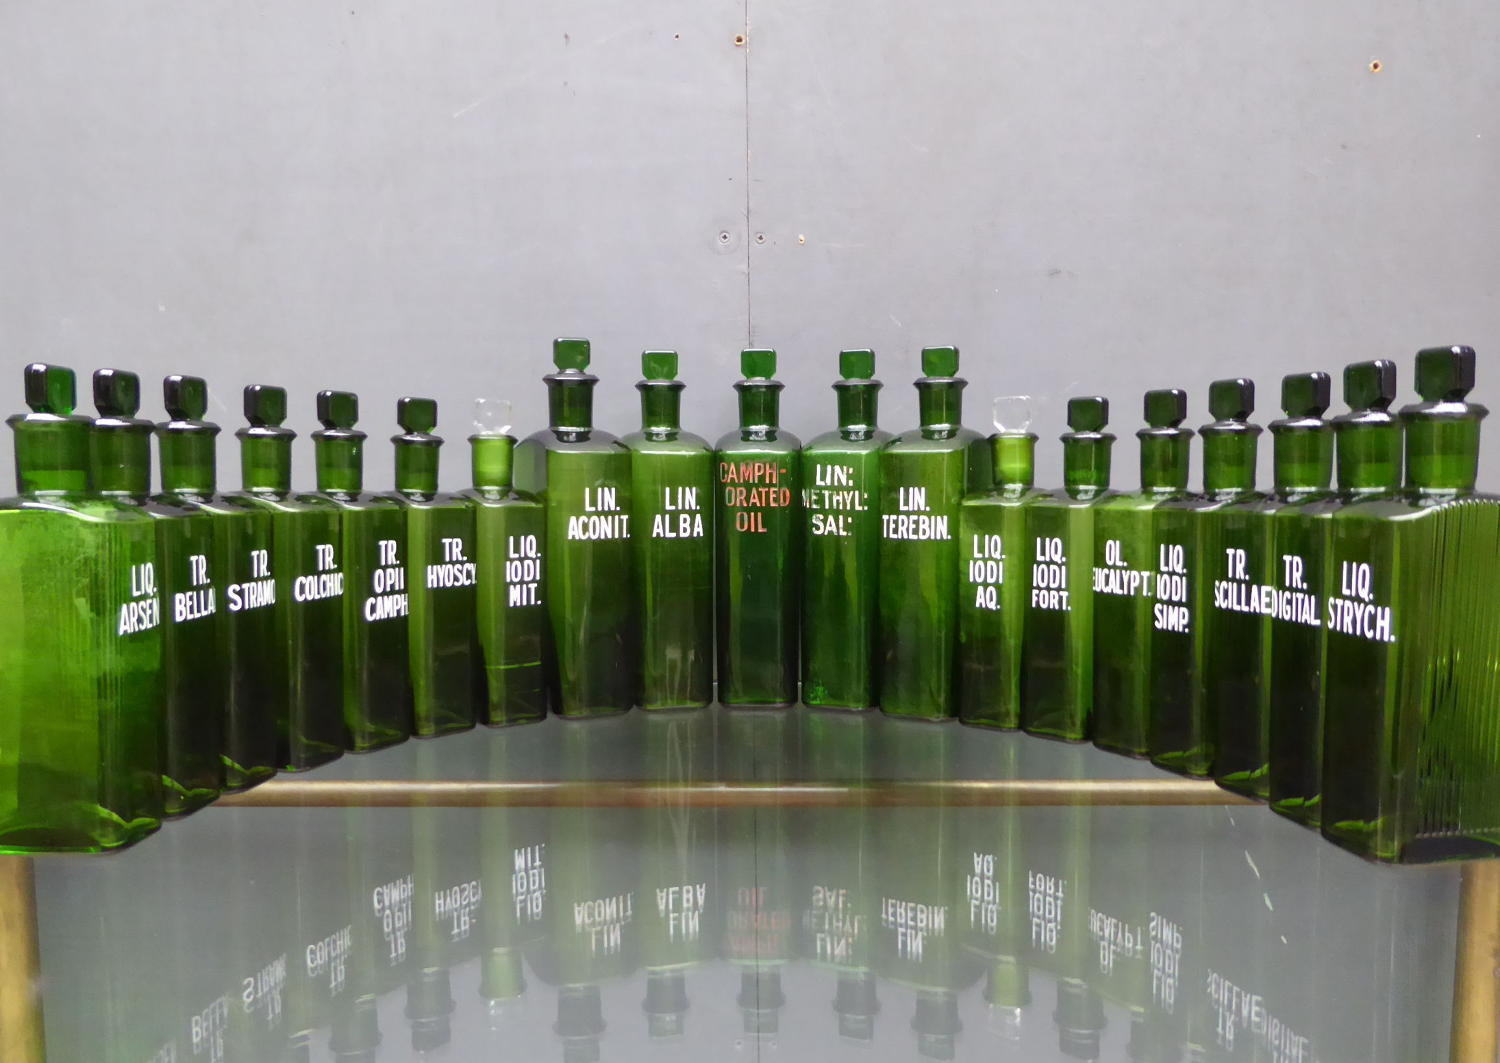 Emerald Green Apothecary Poison Bottles